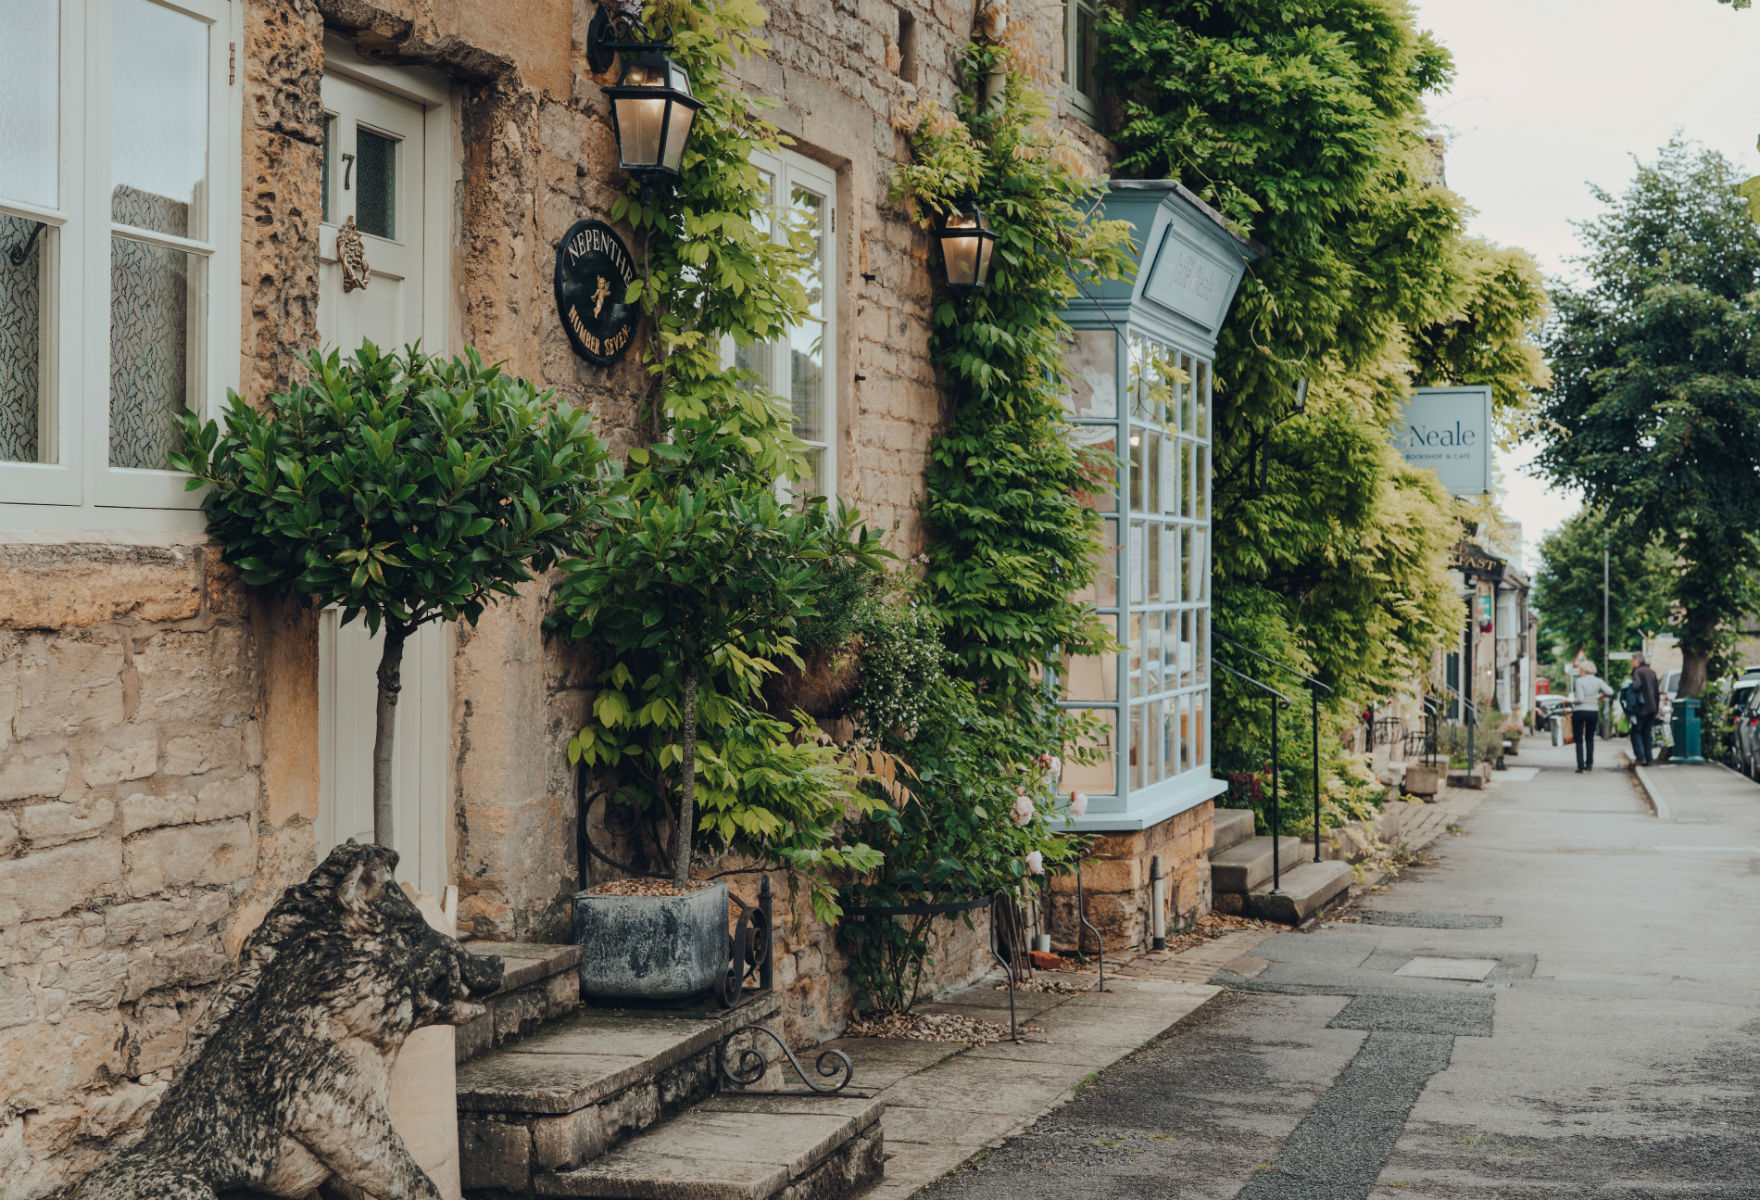 View on a main street in Stow-on-the-Wold (credit: Alena Veasey/Shutterstock)